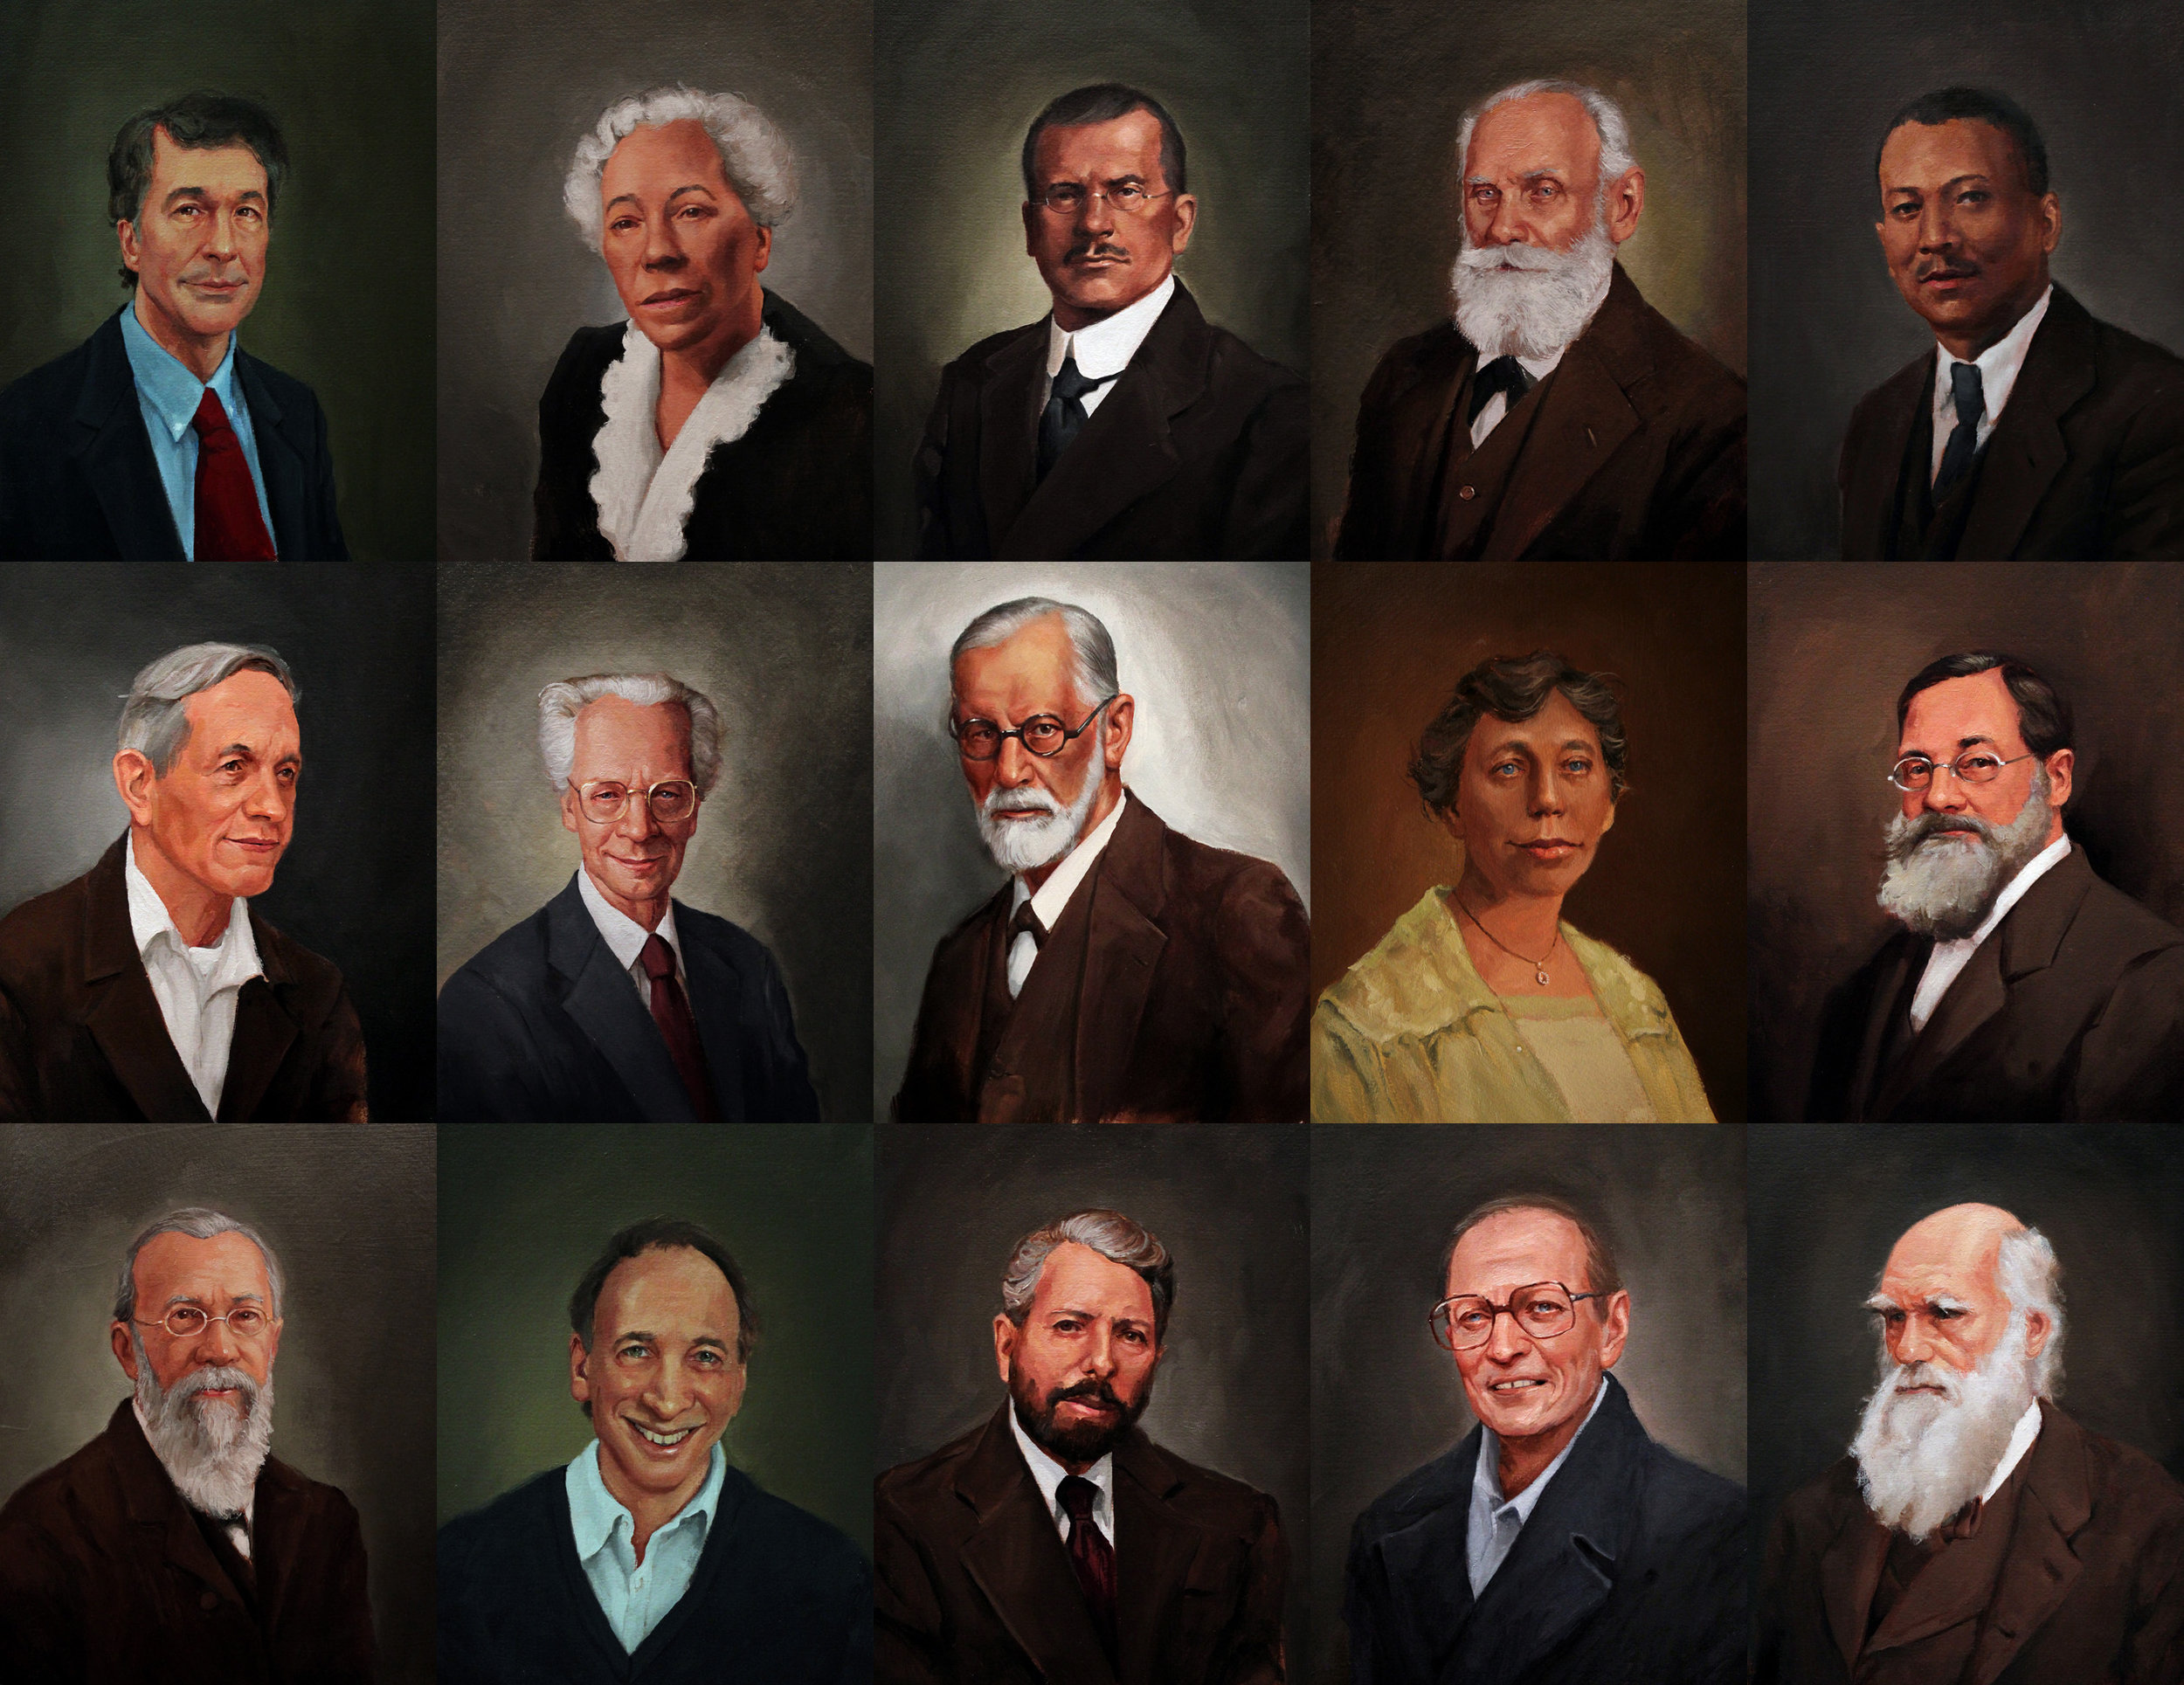 56 Psychologist's Portraits for Psychology College Textbook, W.H. Freeman / Macmillan Publishers, 2013-2016